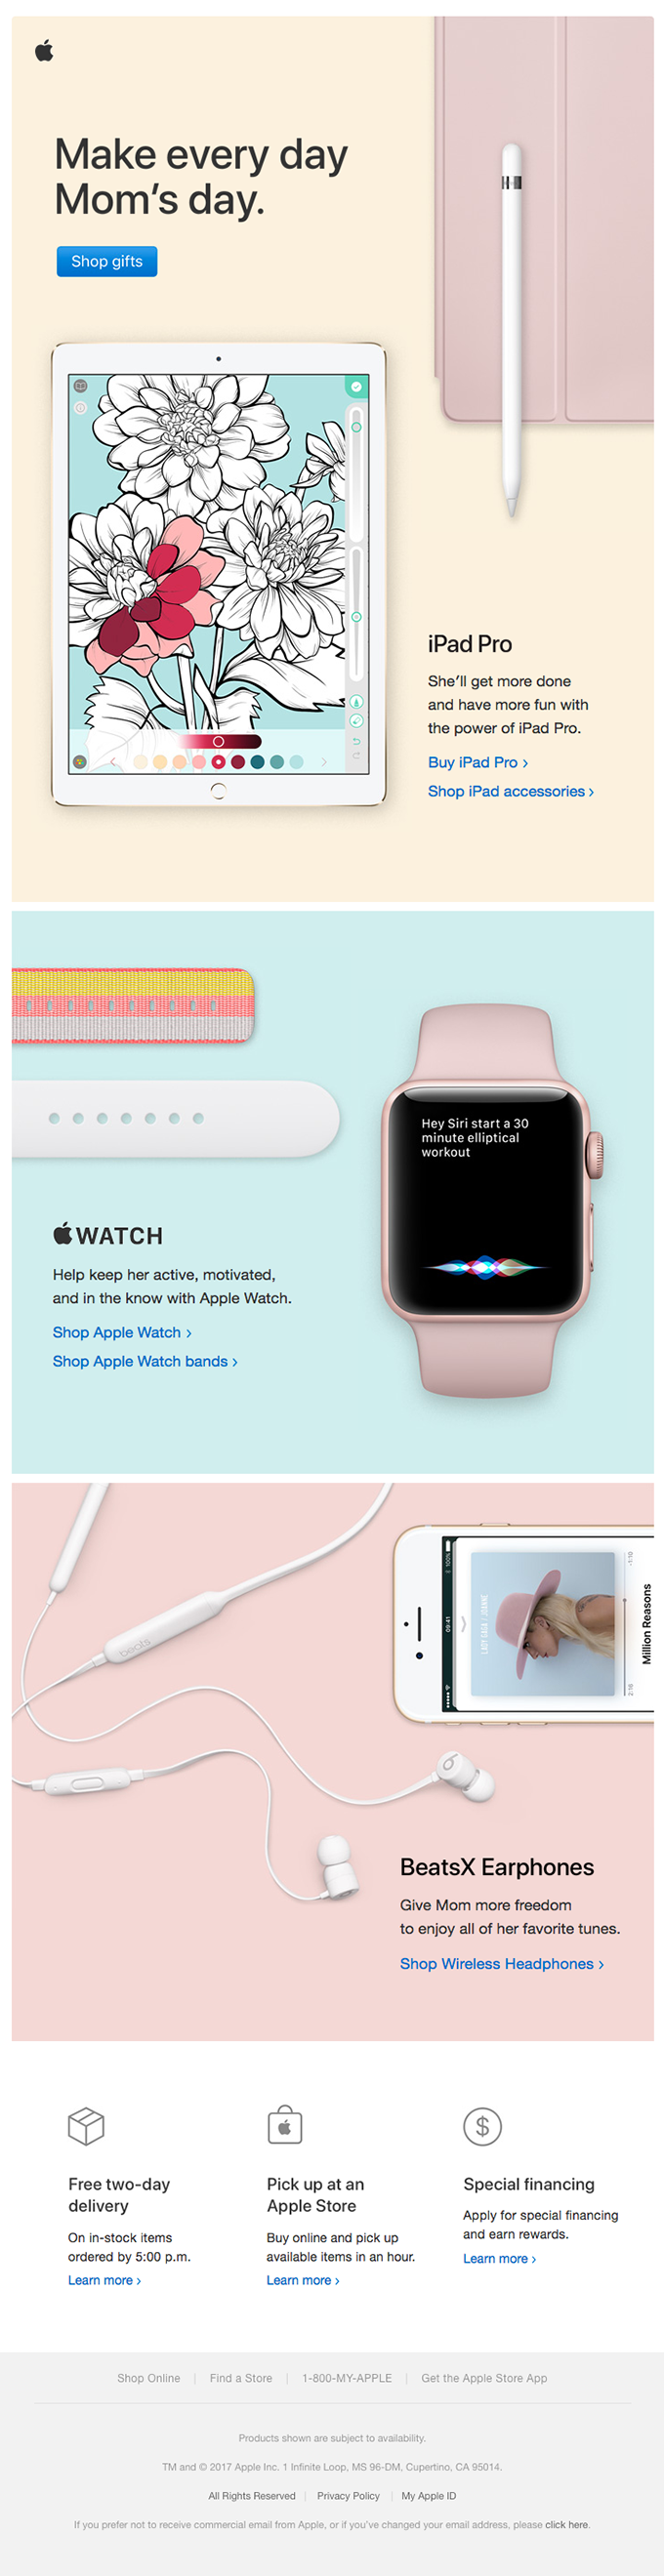 Celebrate Mom with Apple gifts.